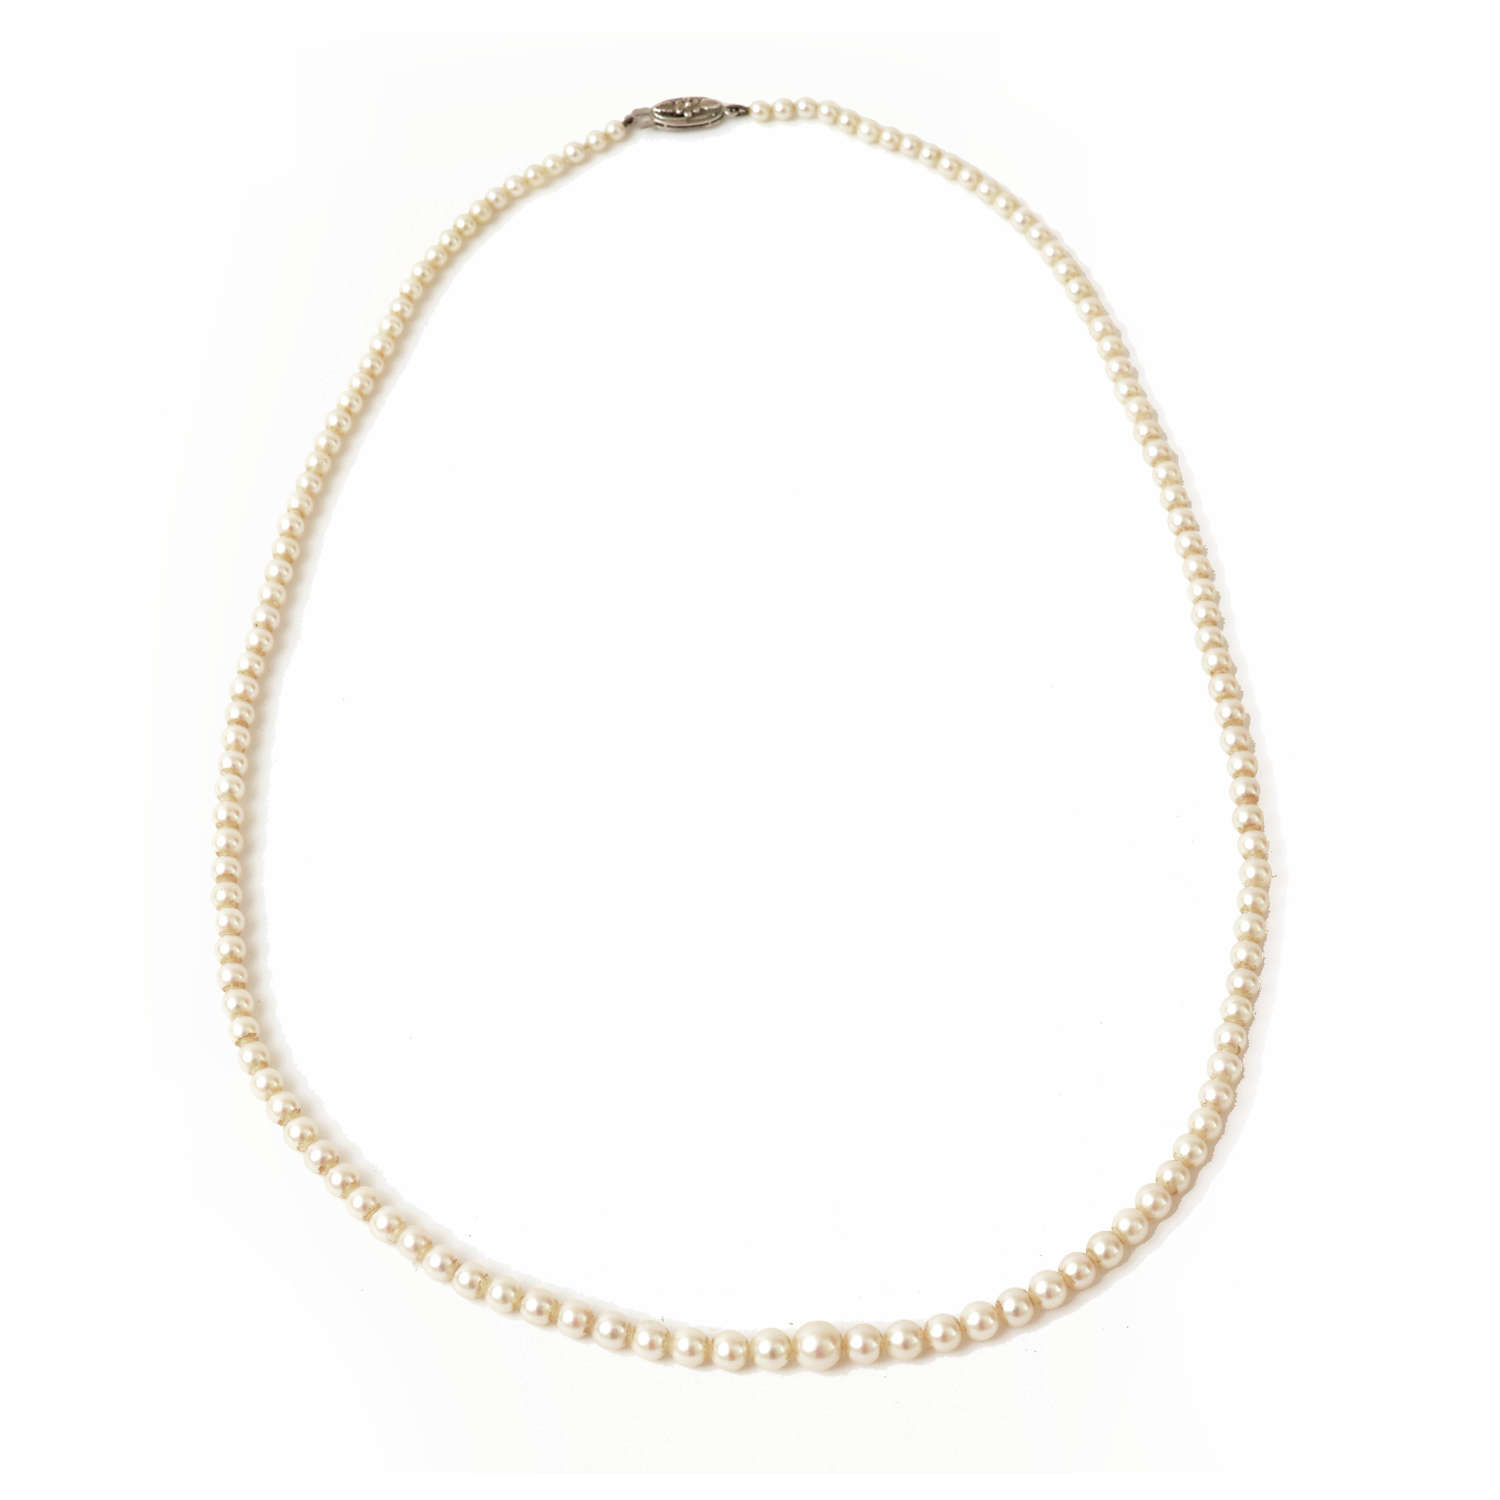 Graduated cultured pearl necklace with white gold clasp